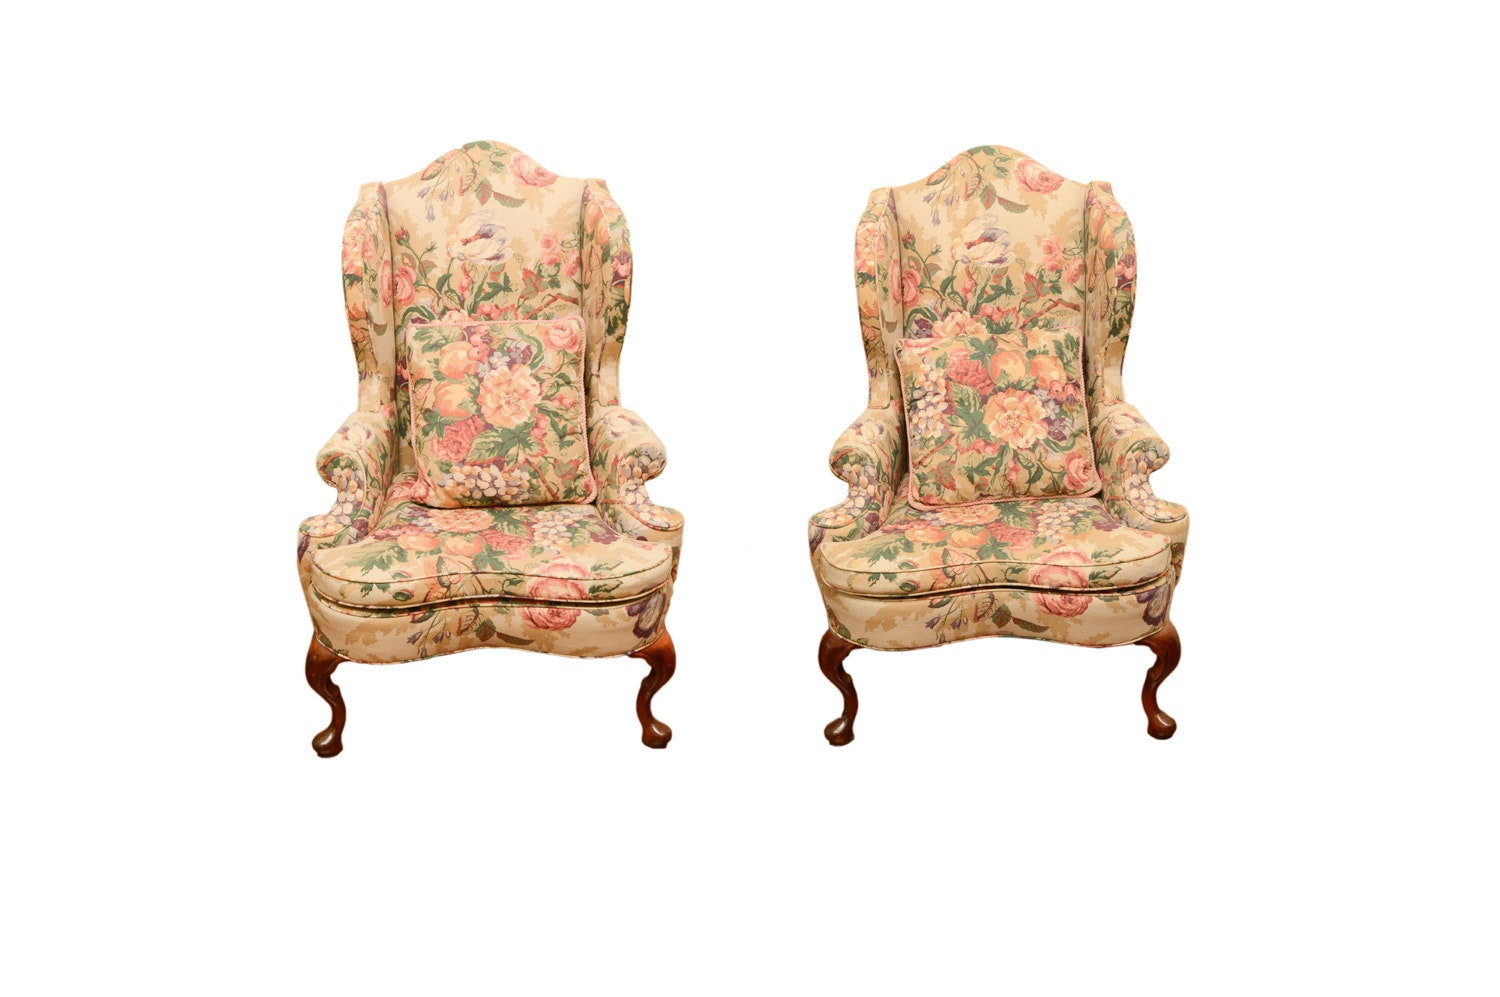 Vintage Queen Anne Style Floral Upholstered Wingback Chairs